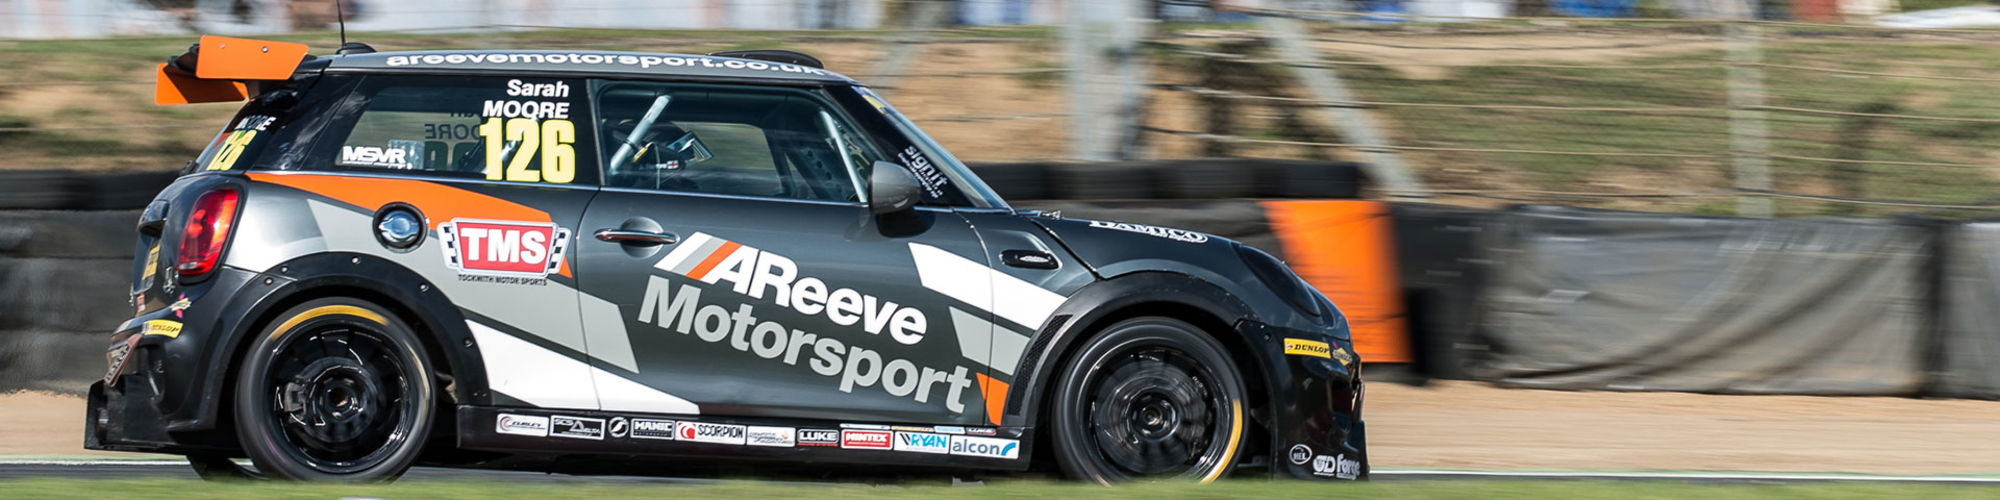 AReeve Motorsport  cover image